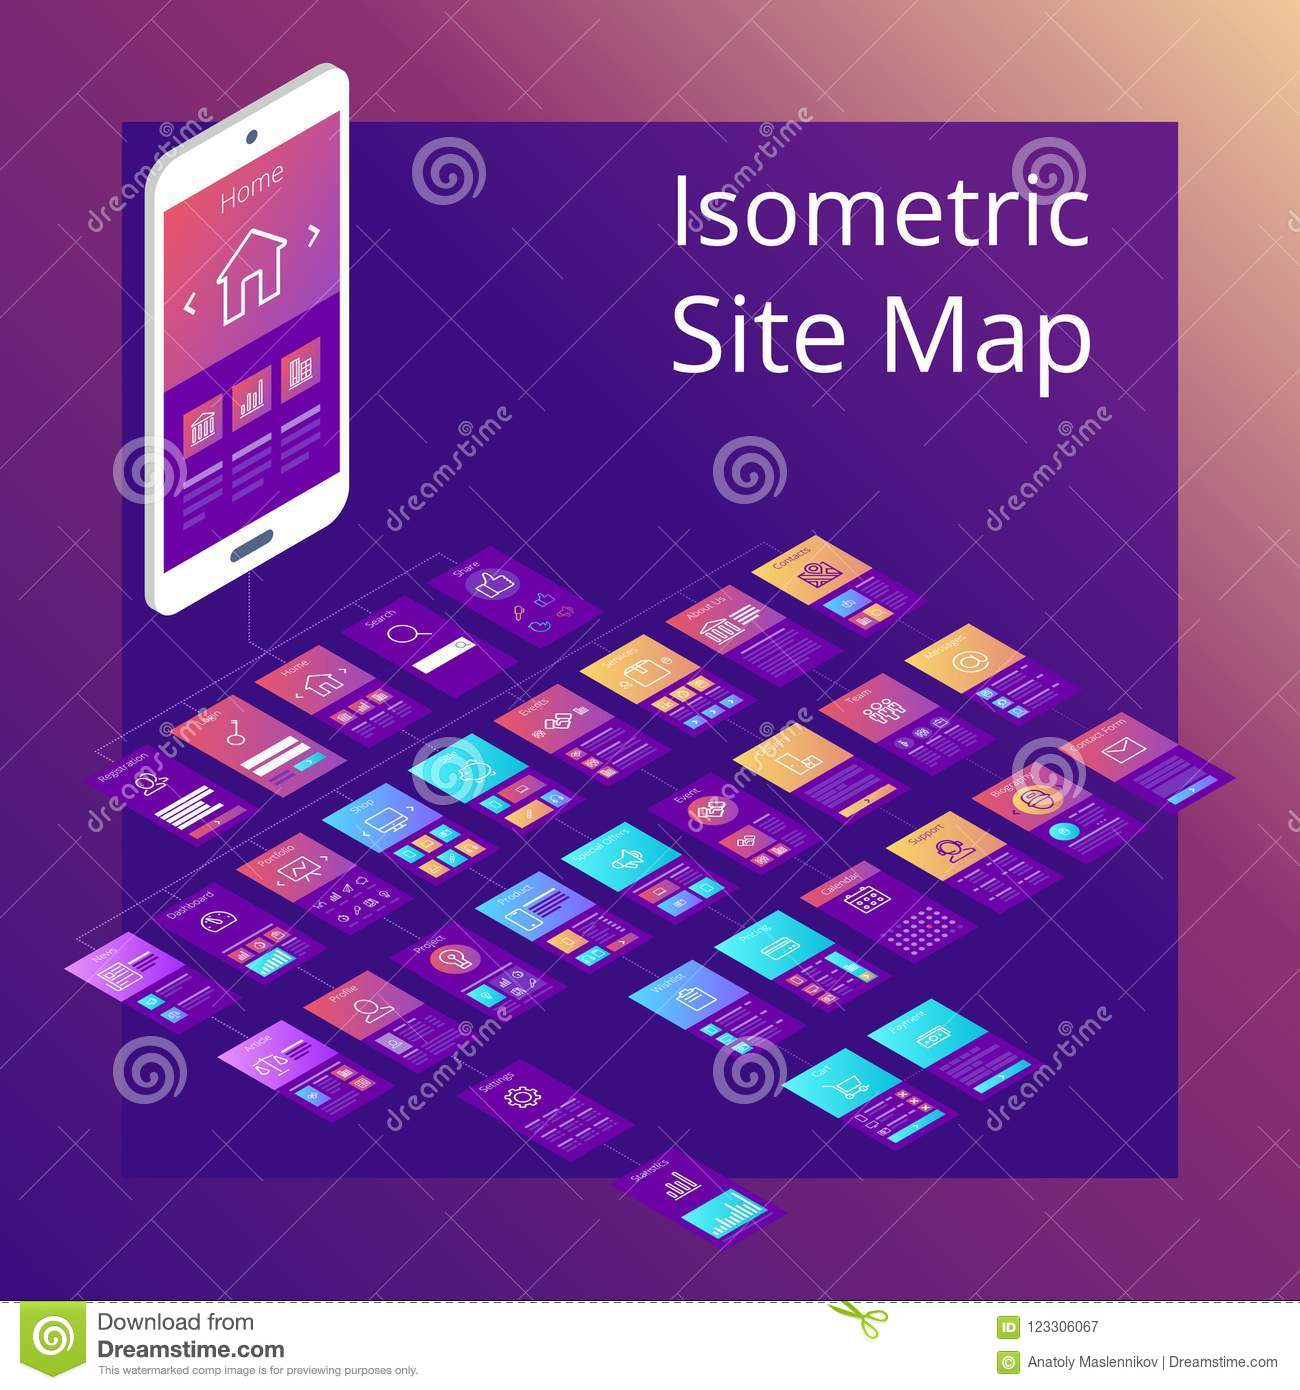 Isometric Site Map